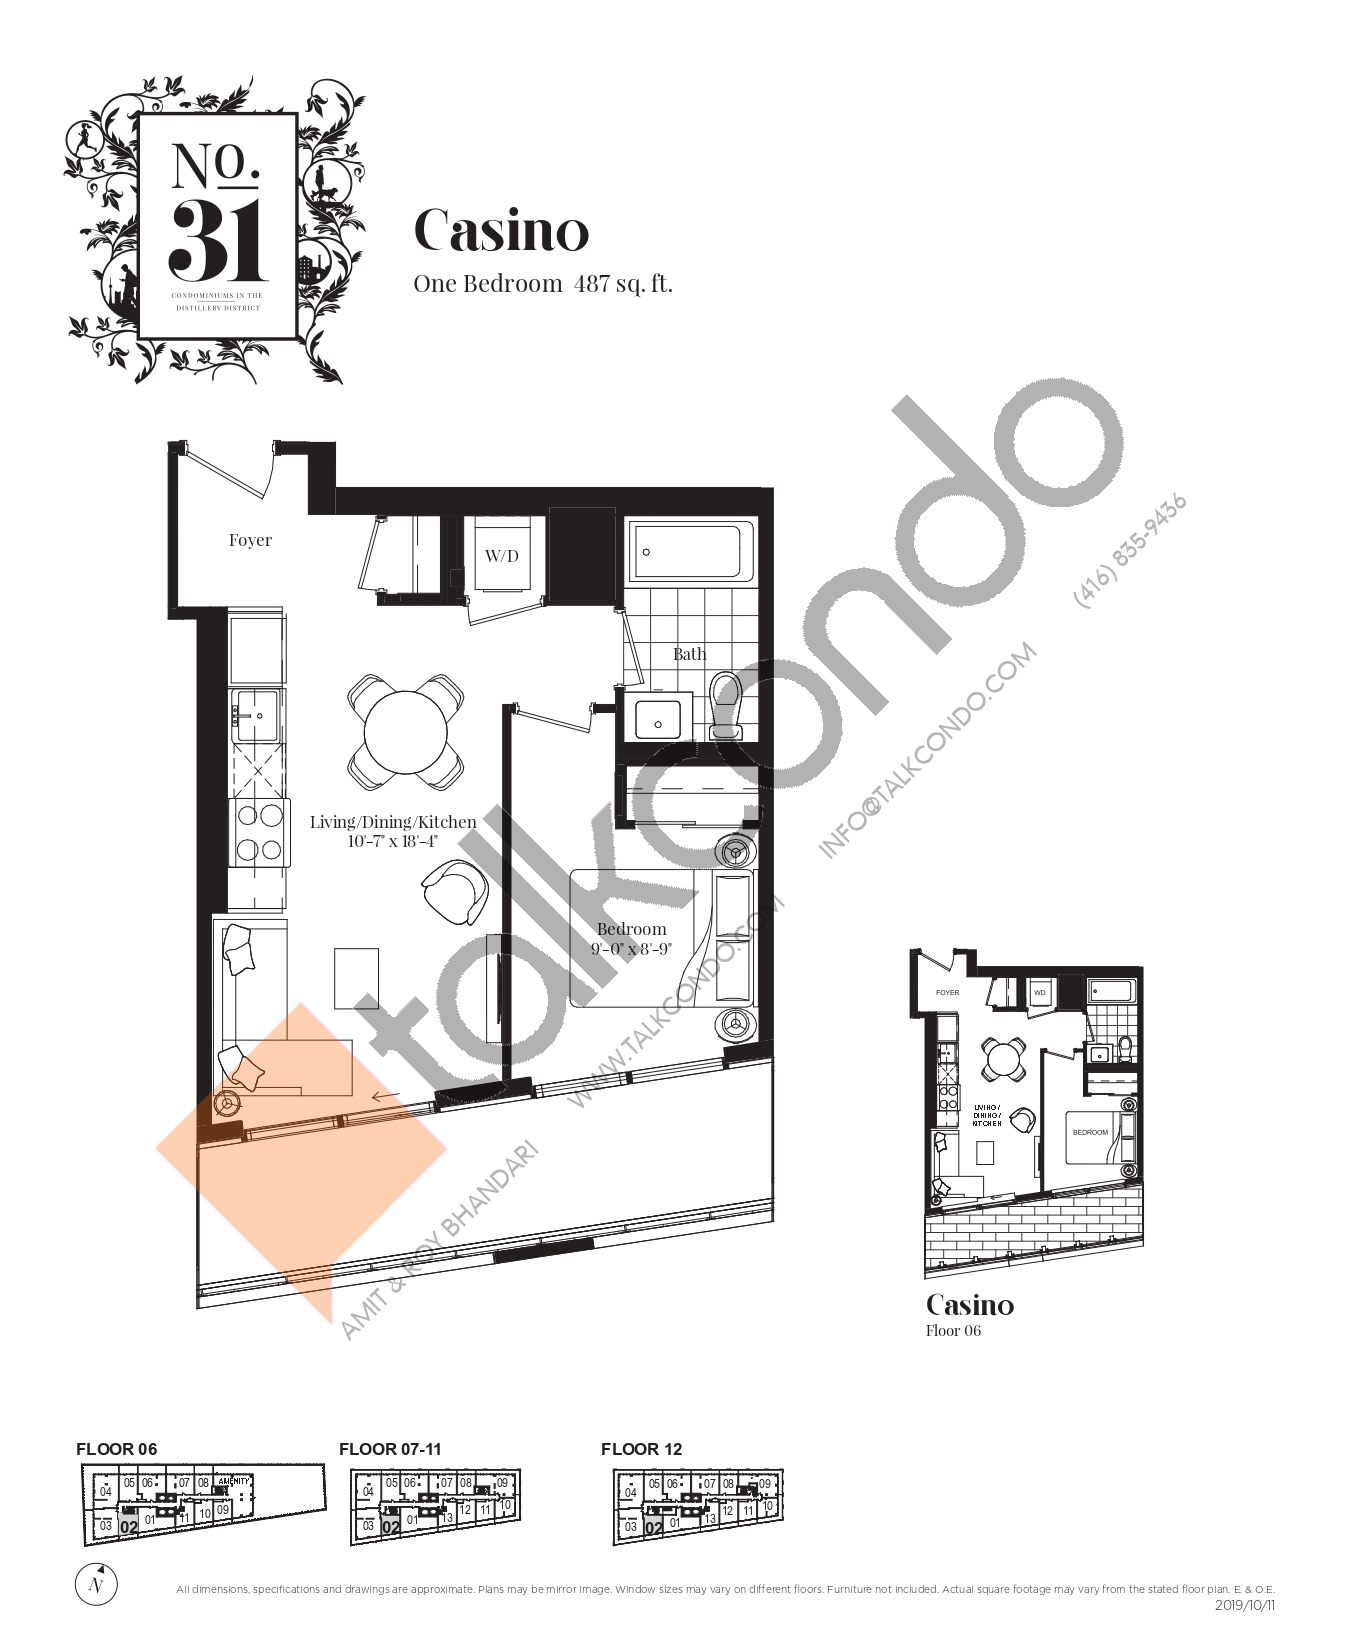 Casino Floor Plan at No. 31 Condos - 487 sq.ft